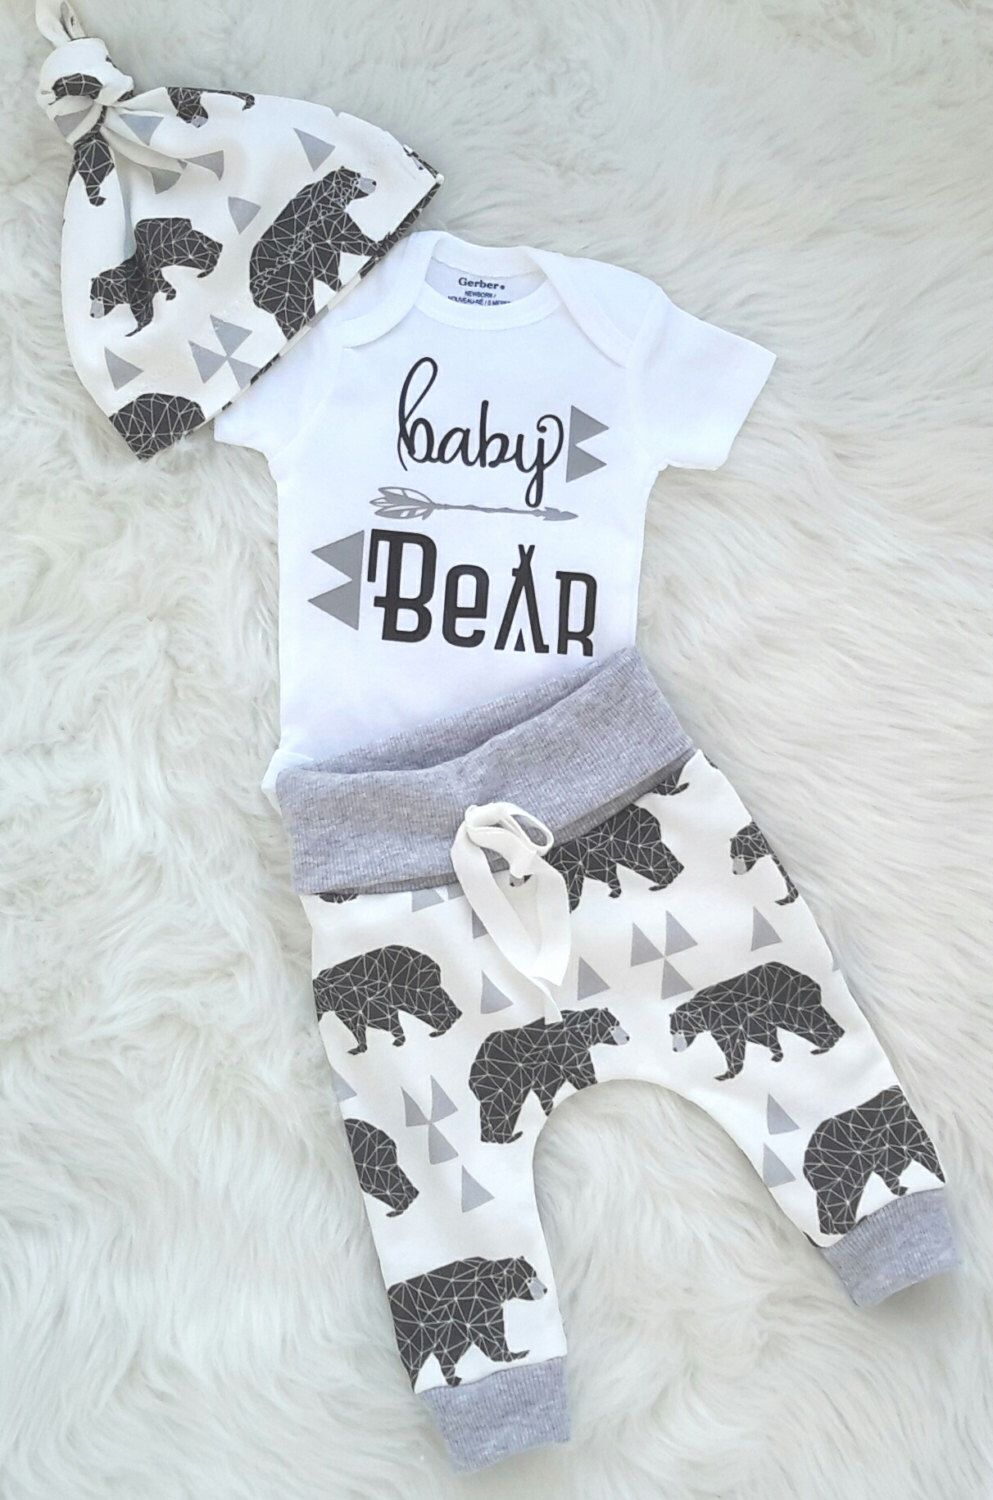 556a7a78d764 Baby boy coming home outfit baby bear  take home outfit  newborn boy ...